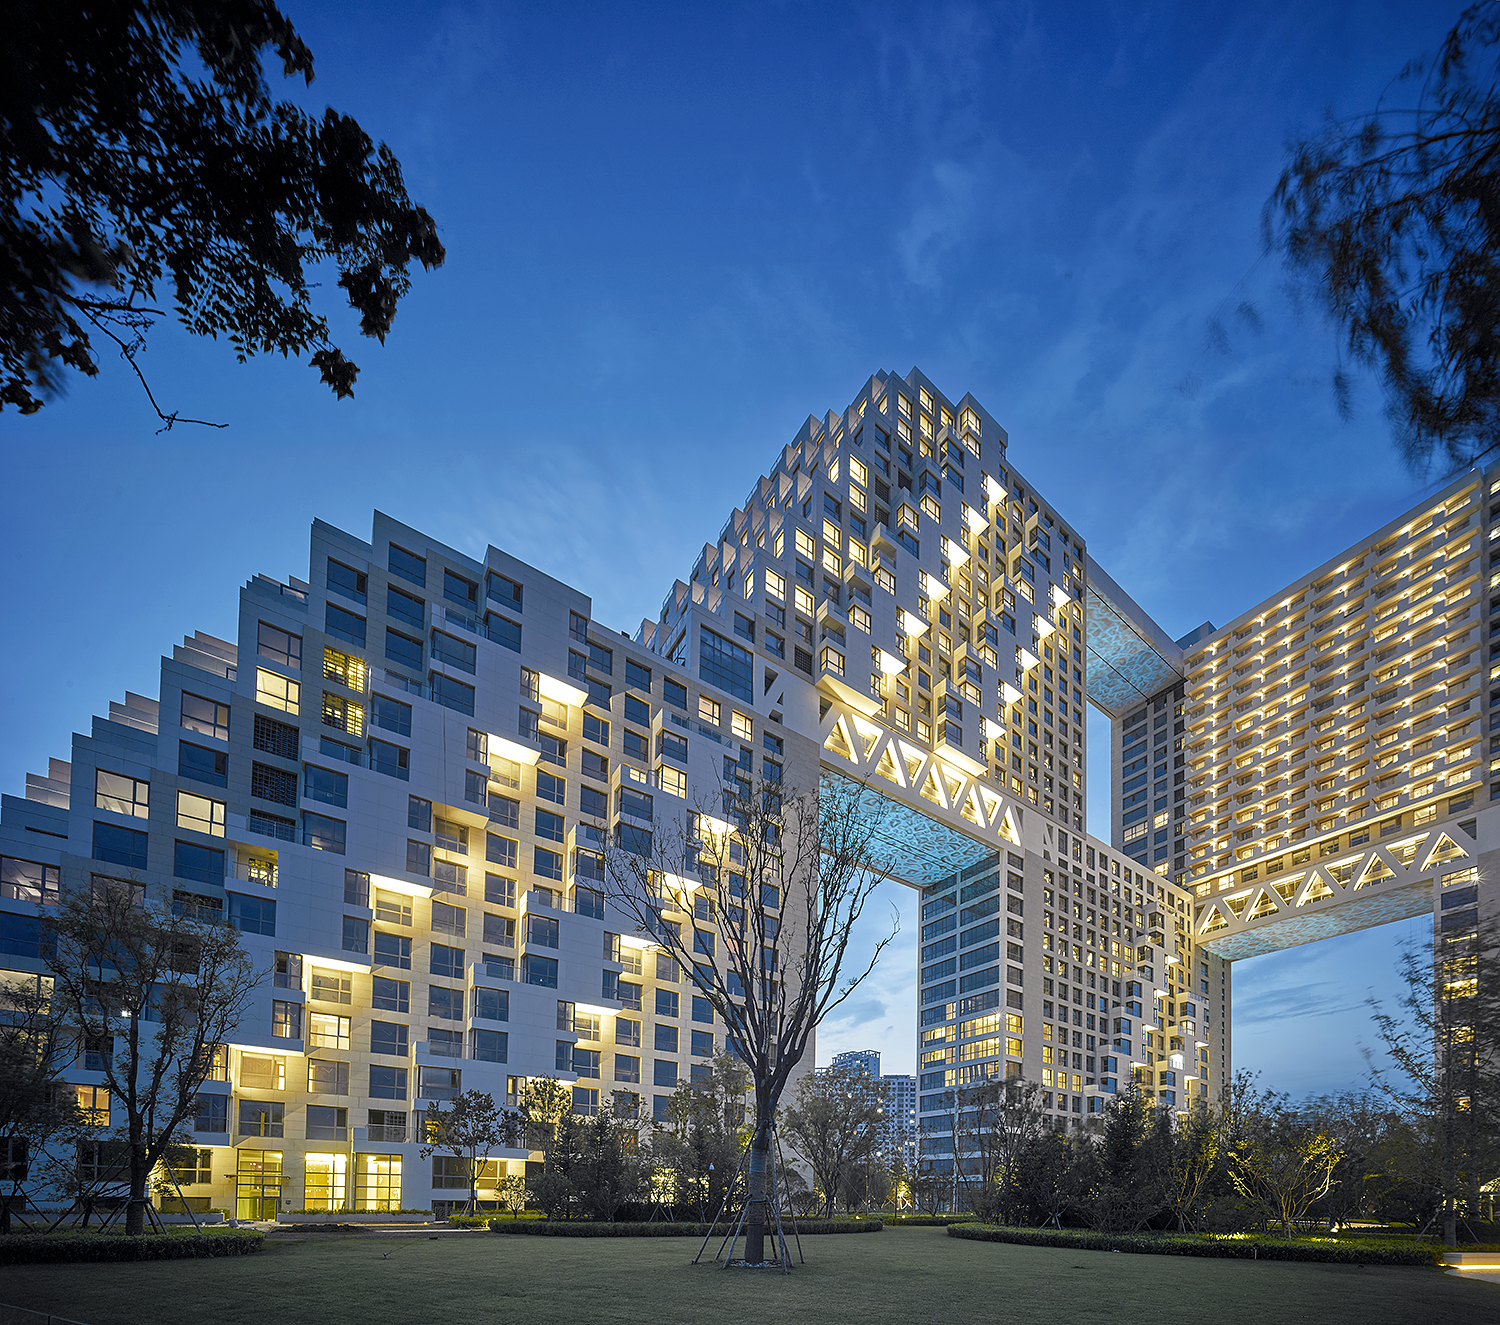 Habitat Qinghuangdao Safdie Architects Archdaily